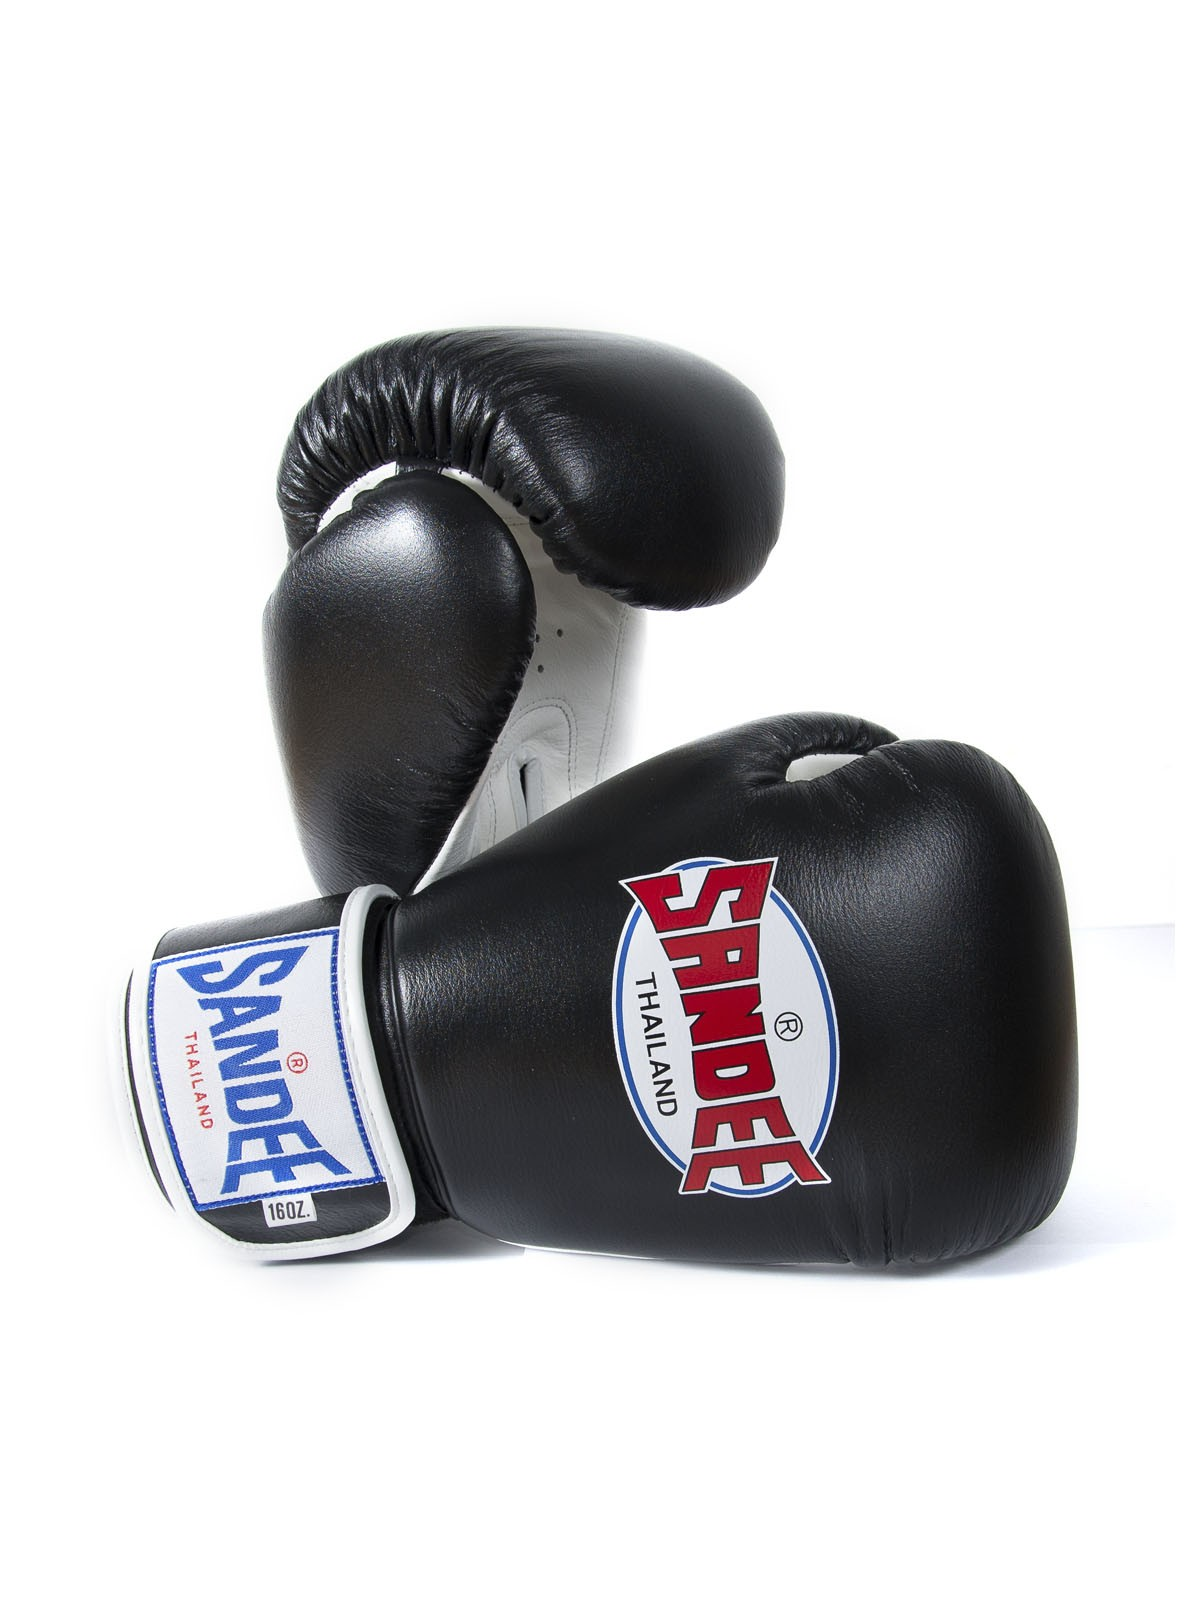 Sandee Two Tone Gloves Boxing Gloves Tone 4cb9ee